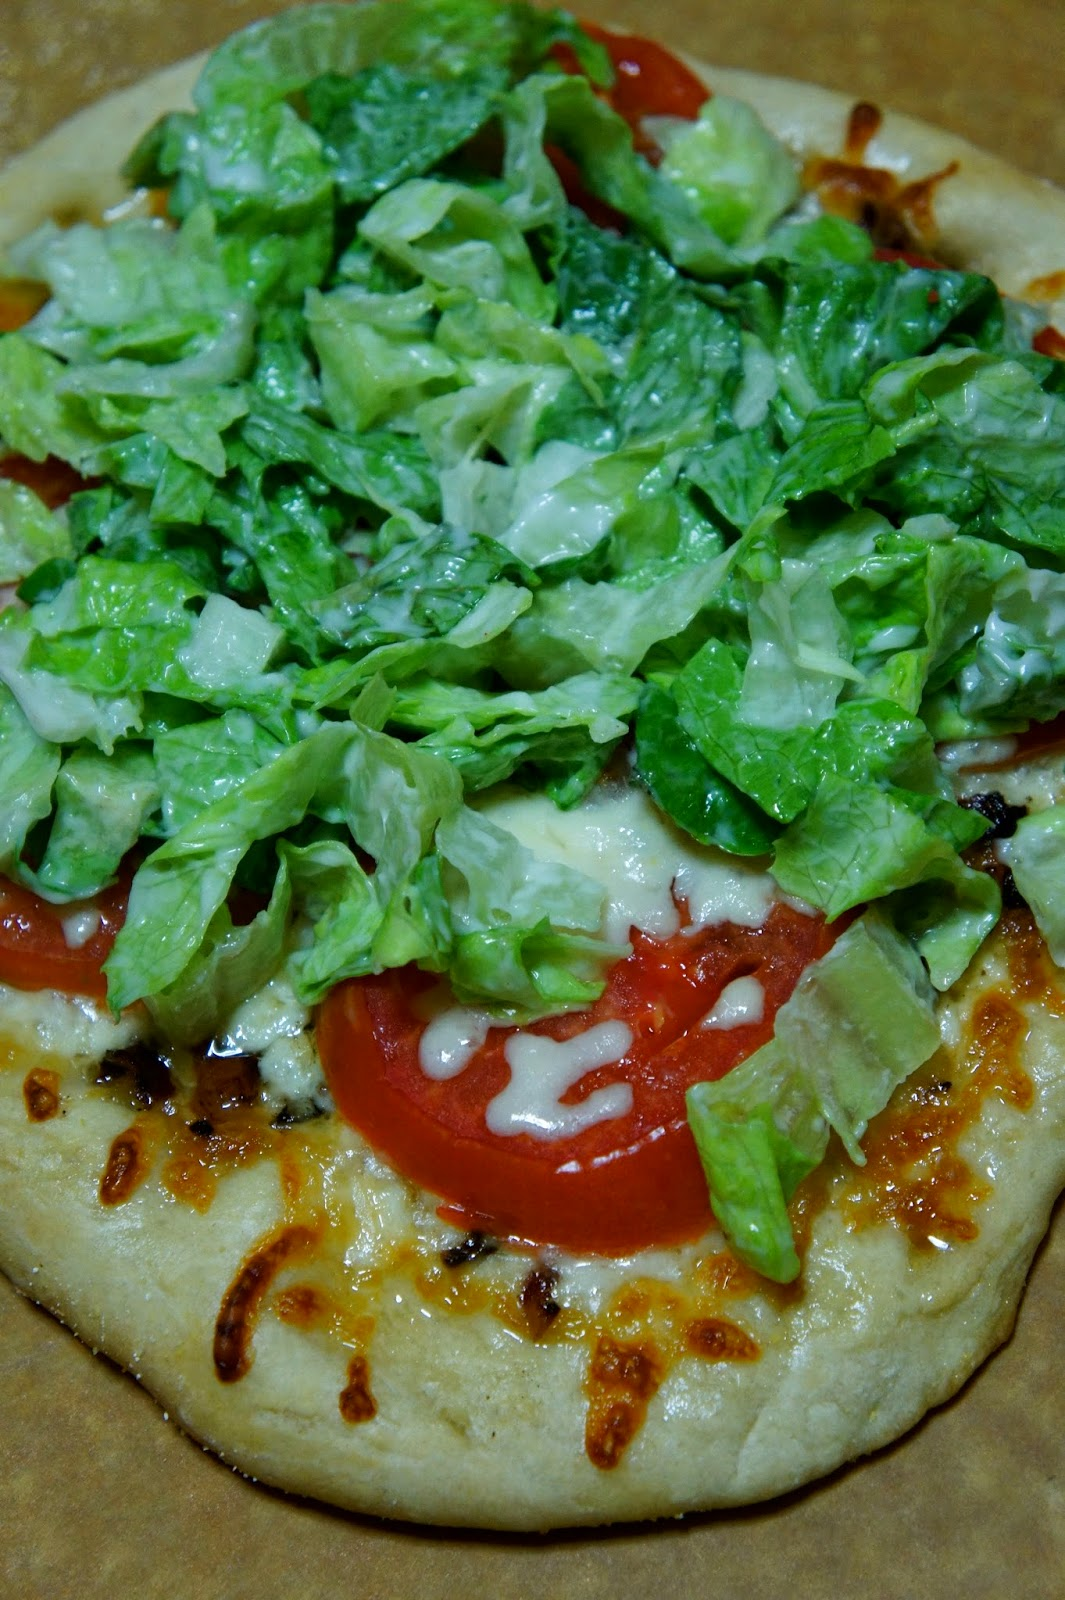 Savory Sweet And Satisfying: California Pizza Kitchen